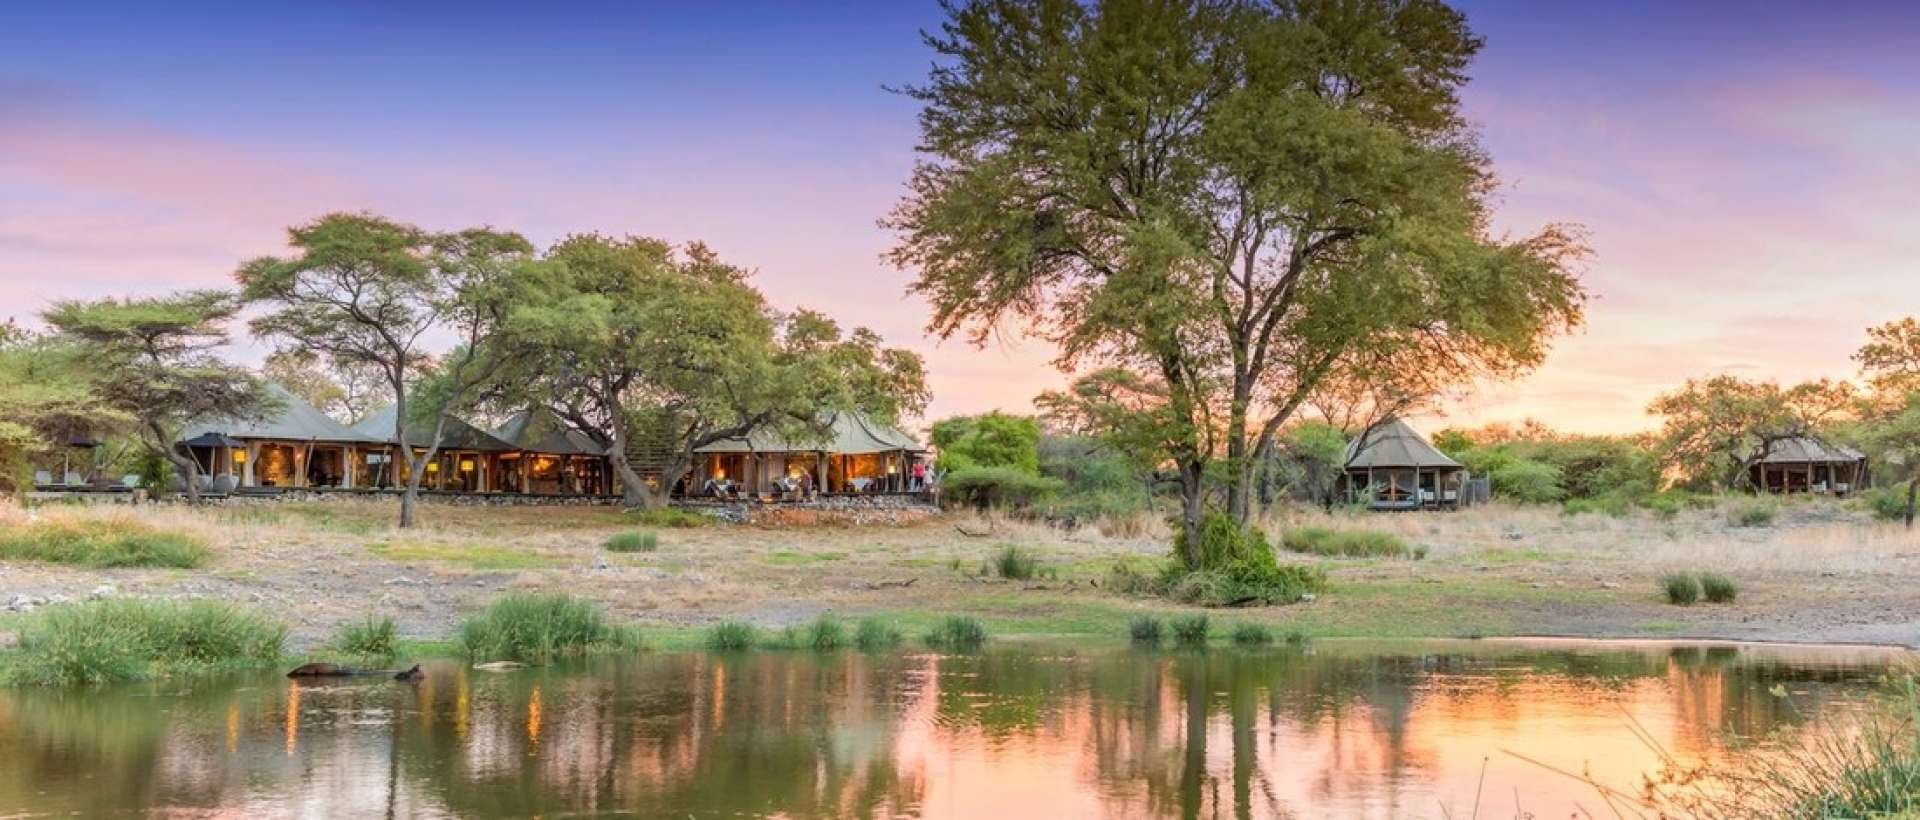 Onguma Tented Camp is an example of luxury accommodation for couples